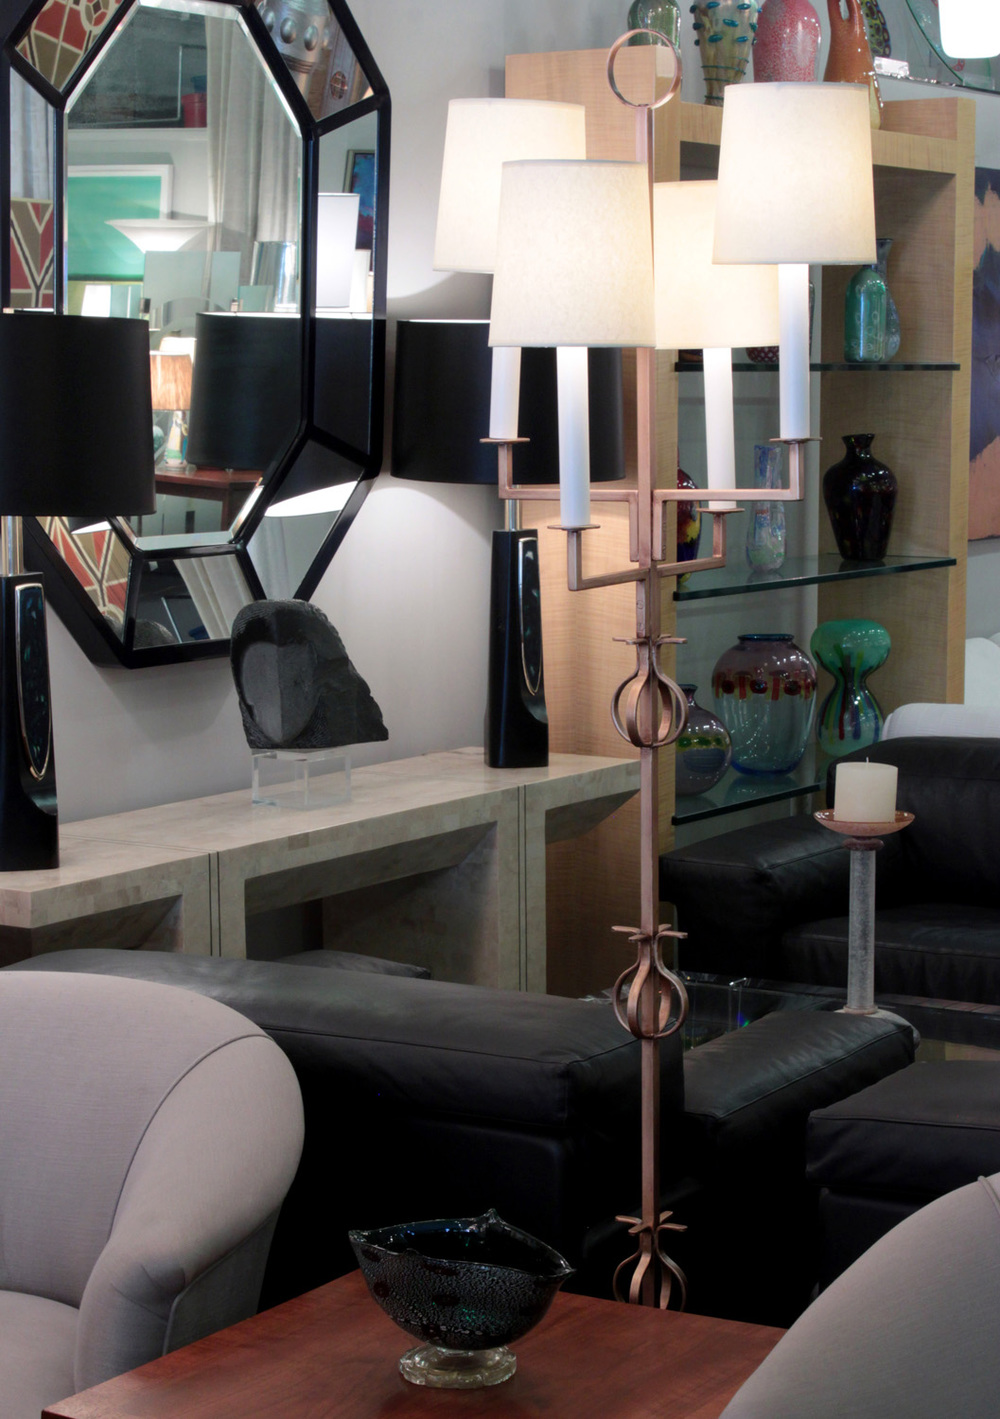 Parzinger 85 4light bronze floorlamp65 env hires.jpg